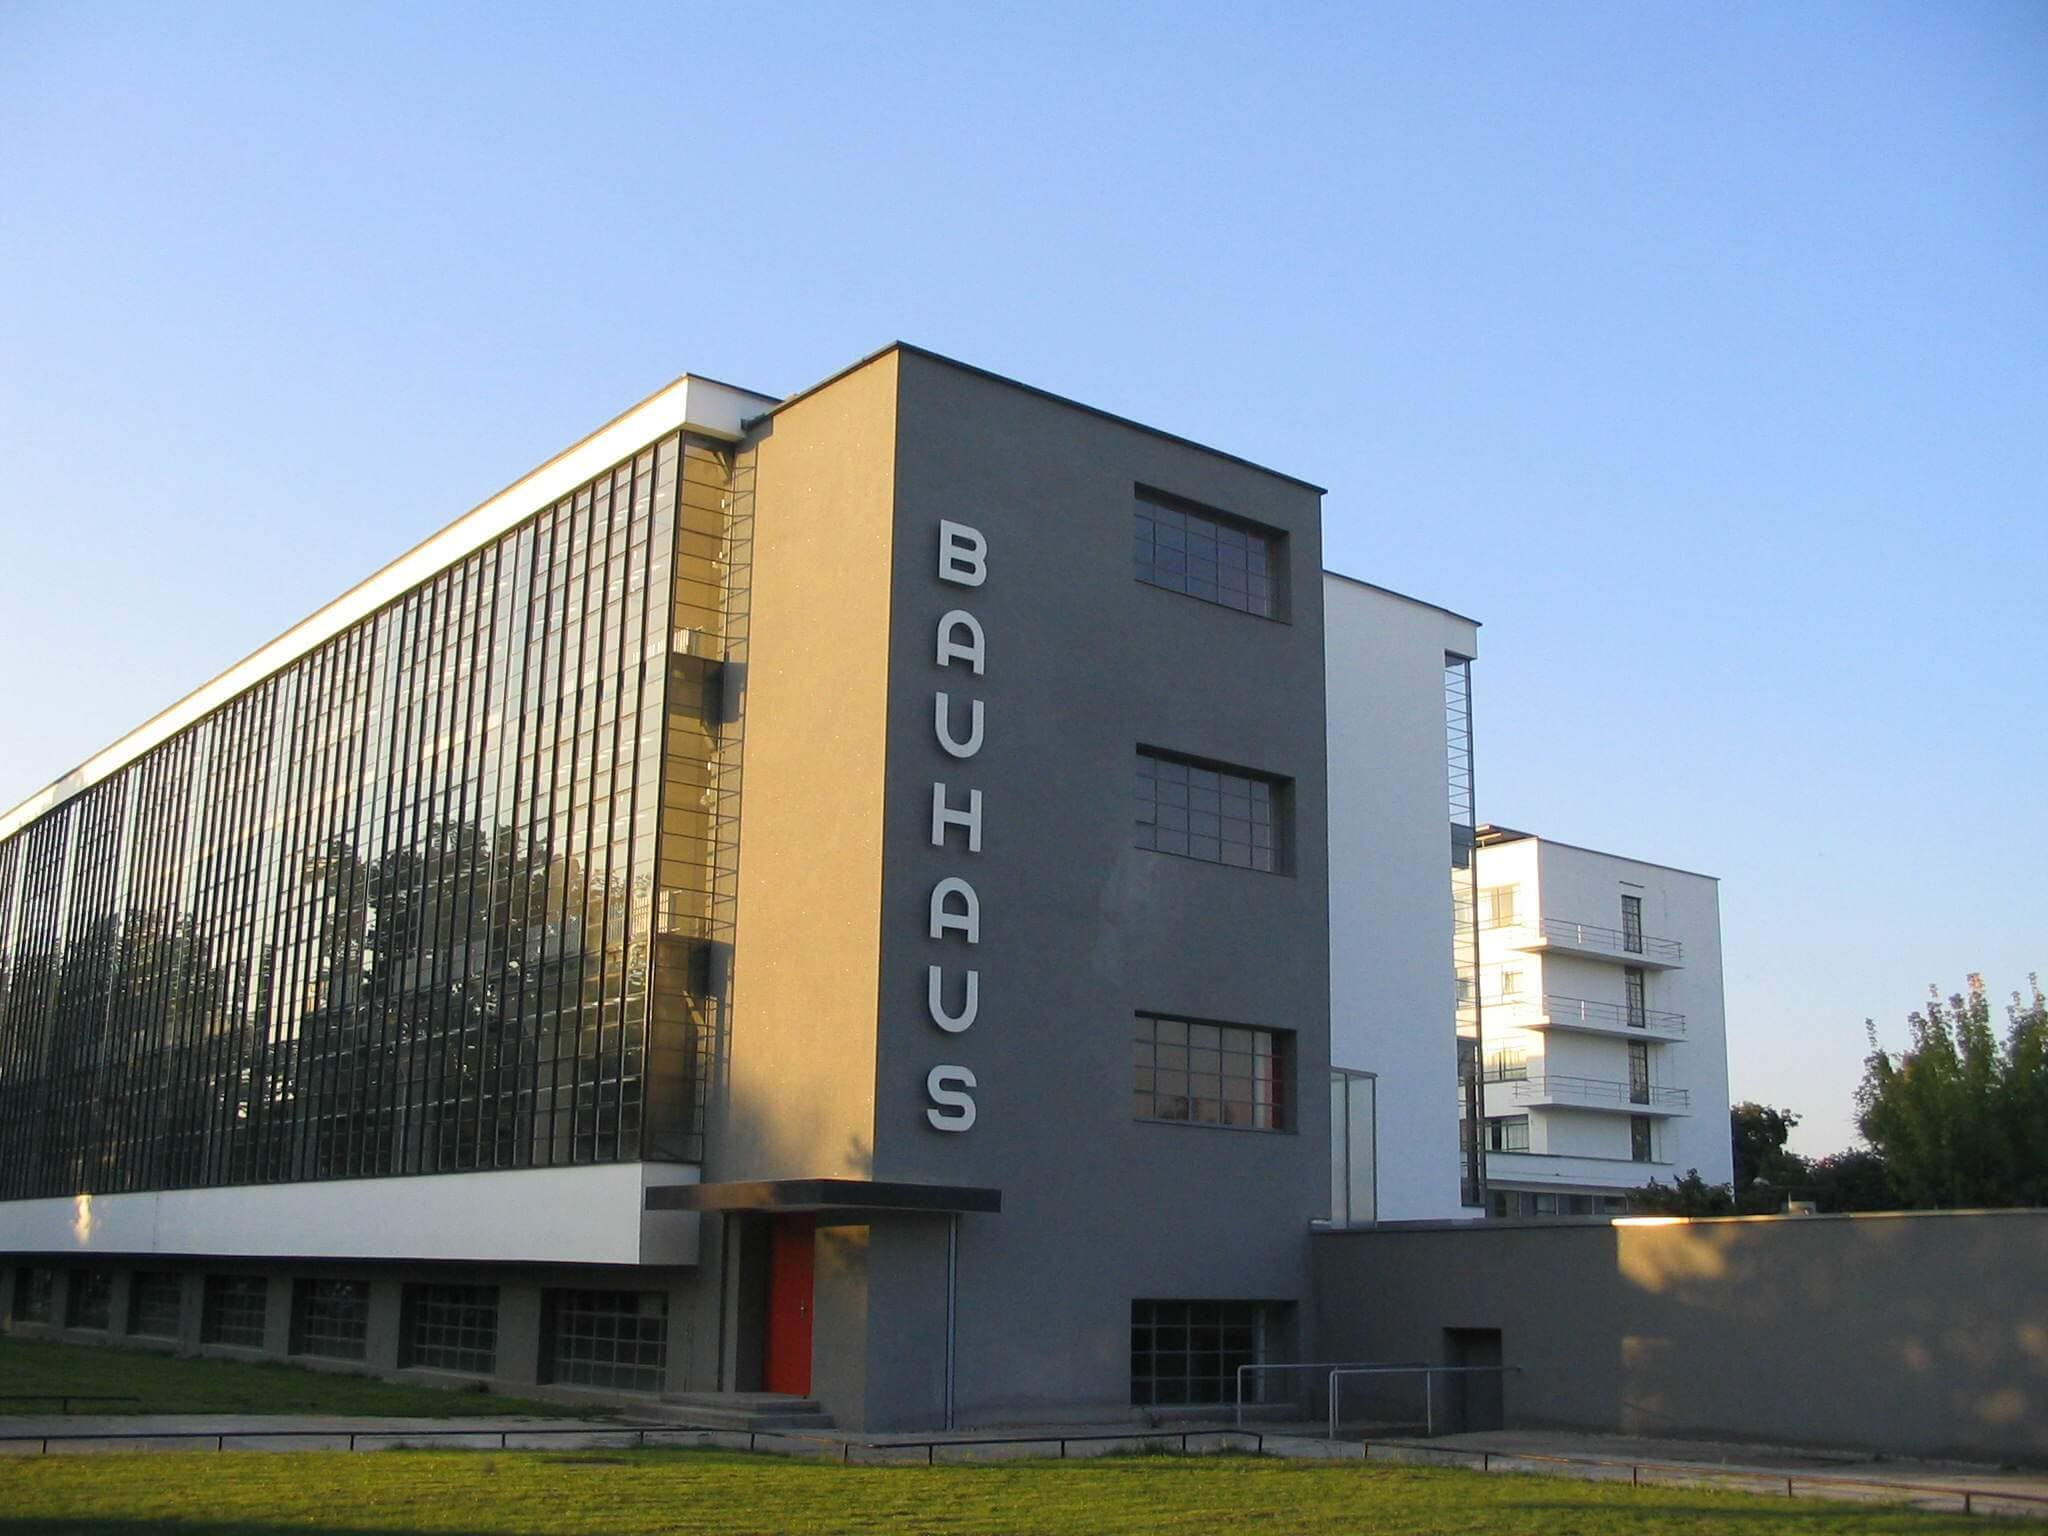 Universidad bauhaus